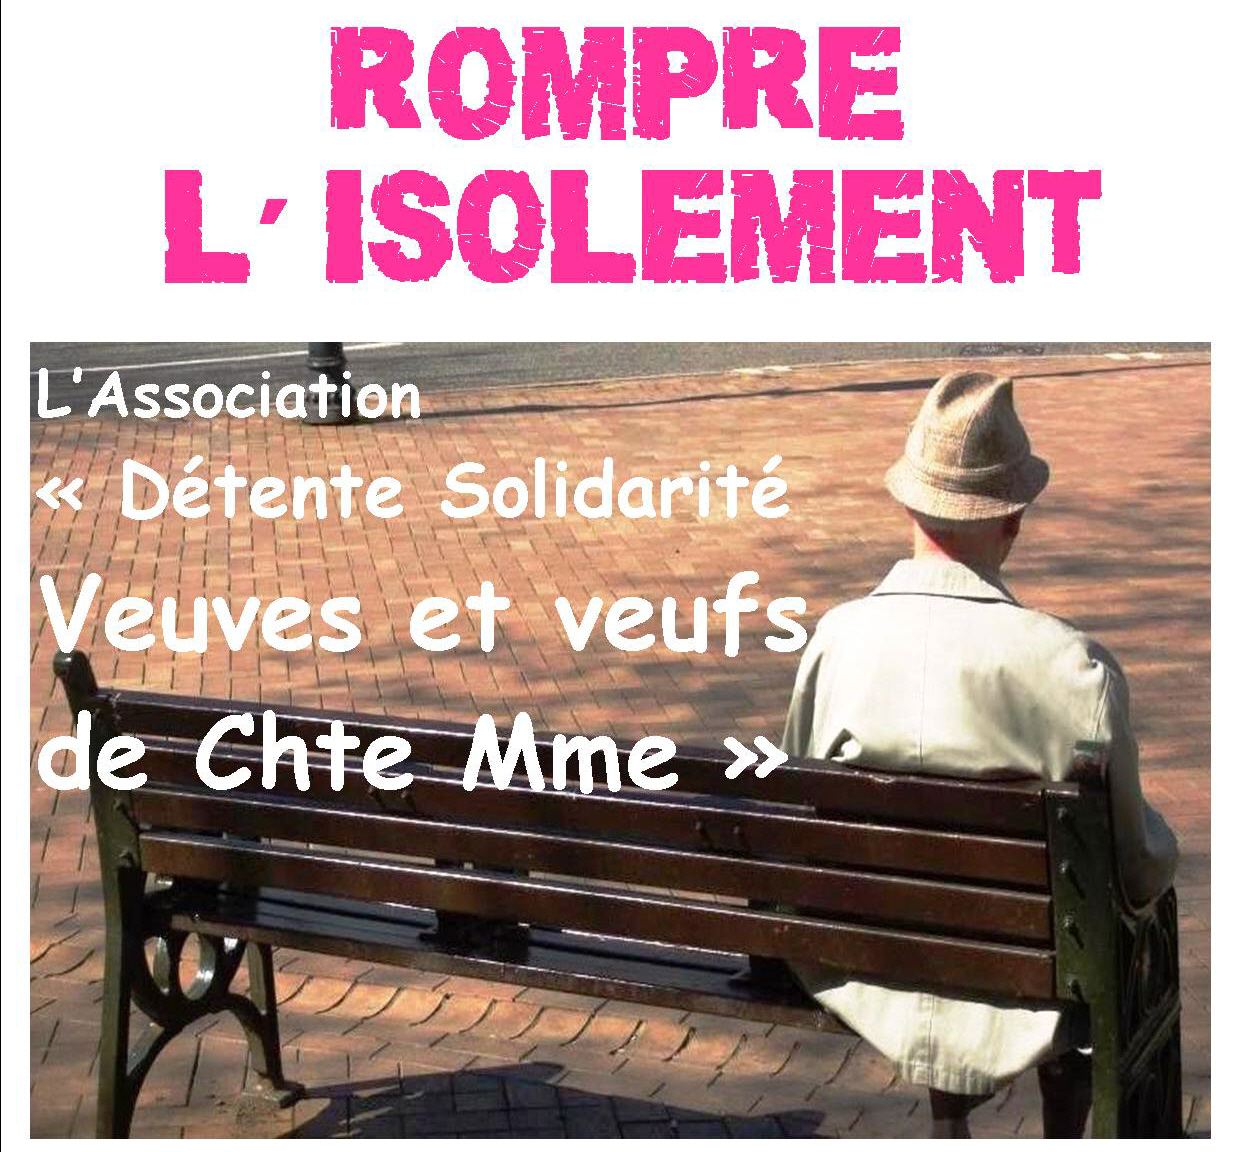 2014 27 sept rompre l isolement